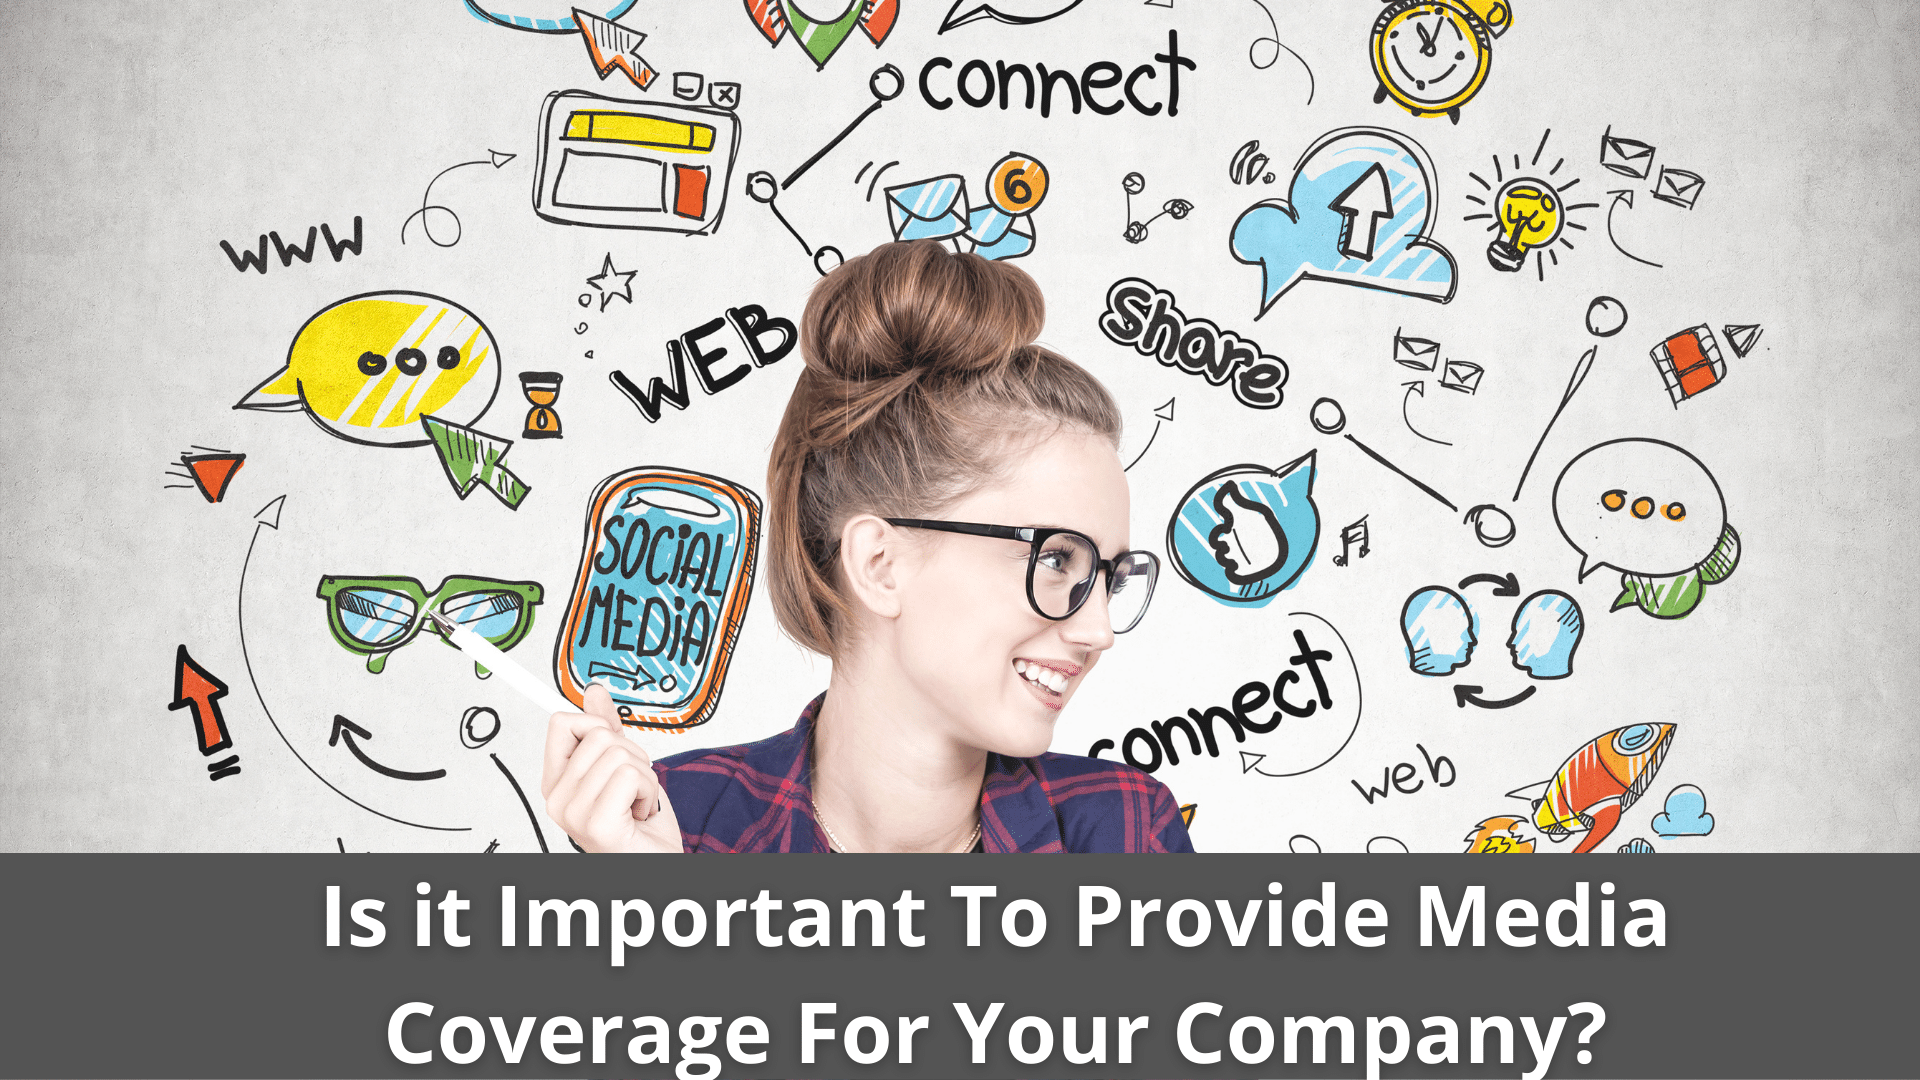 Is it Important To Provide Media Coverage For Your Company? 41